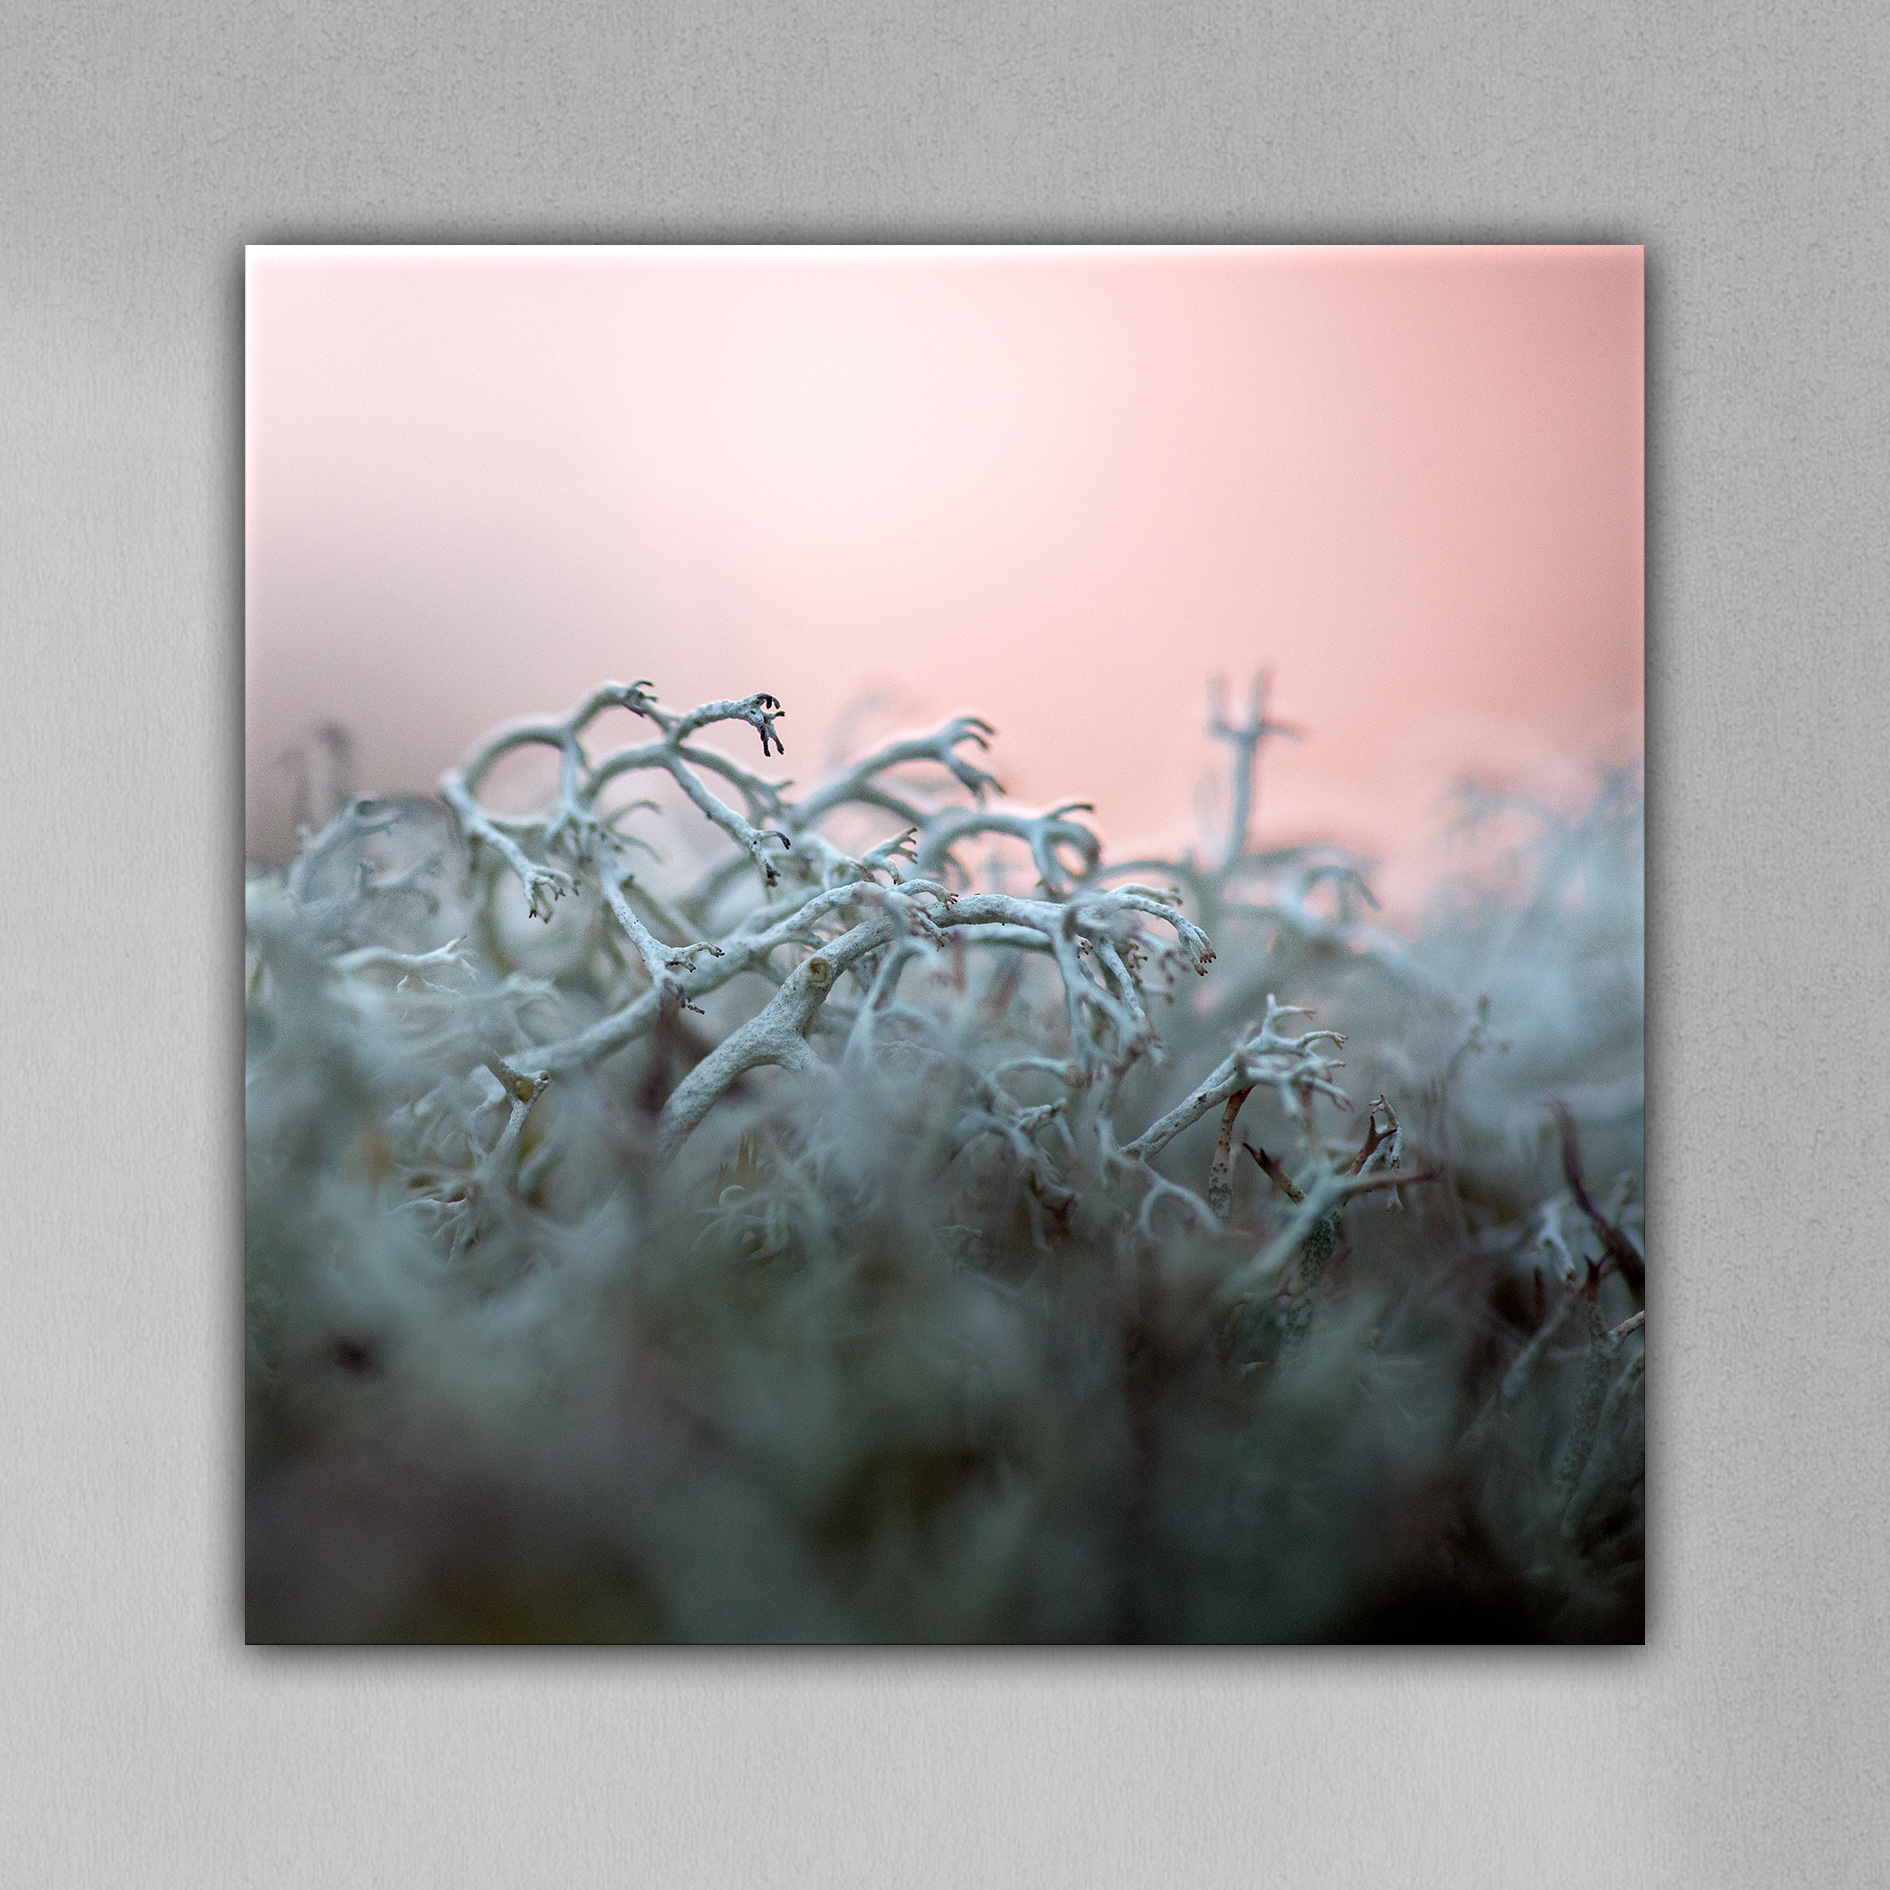 MOSS DANCERS OF THE ARCHIPELAGO SEA · 1st edition 30x30 cm Aluminum Resin Print   AVAILABLE FOR PURCHASE